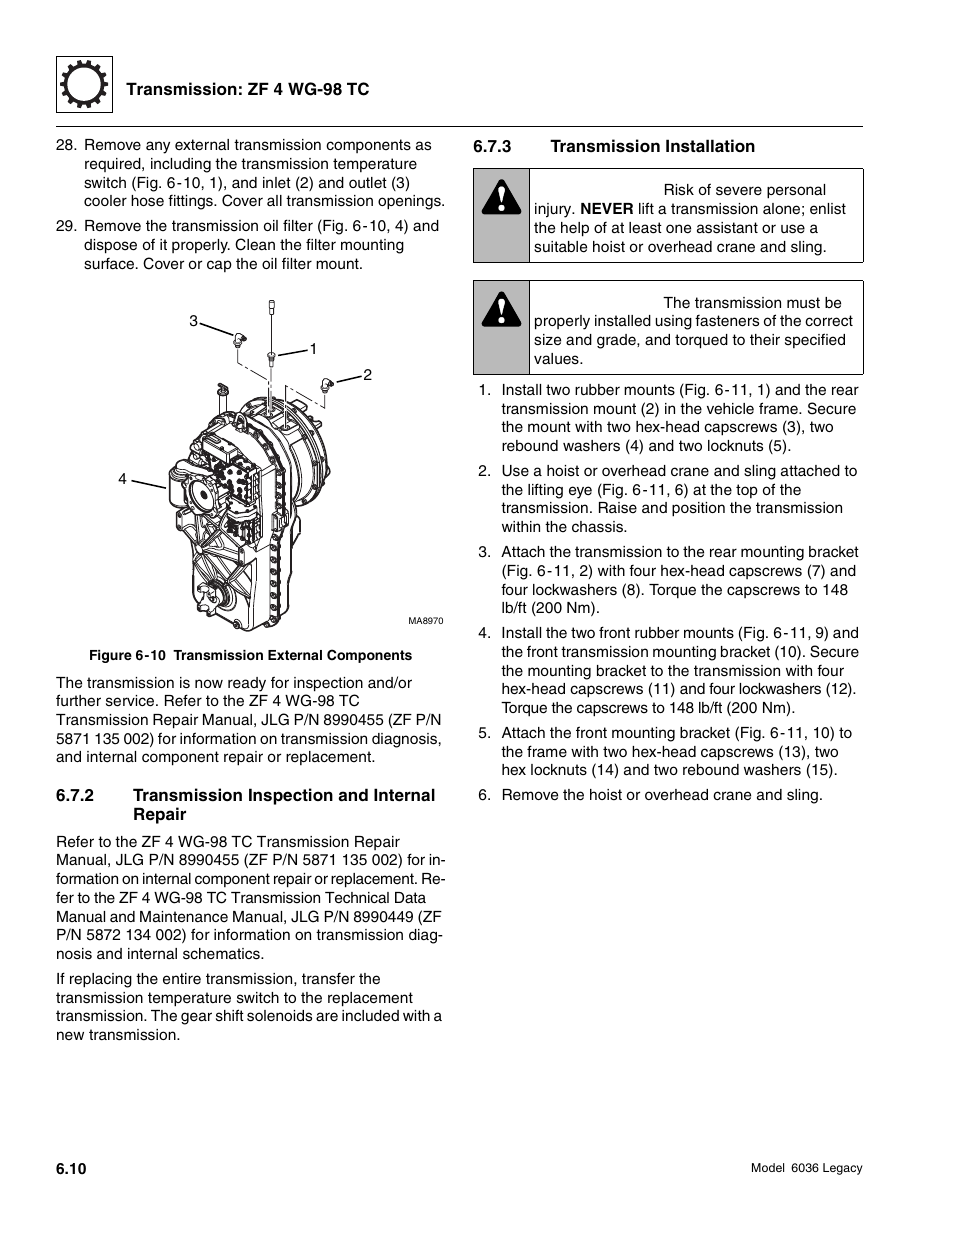 skytrak 6036 service manual page172 6036 skytrak wiring diagram traverse wiring diagram, american skytrak 6036 wiring diagram at panicattacktreatment.co